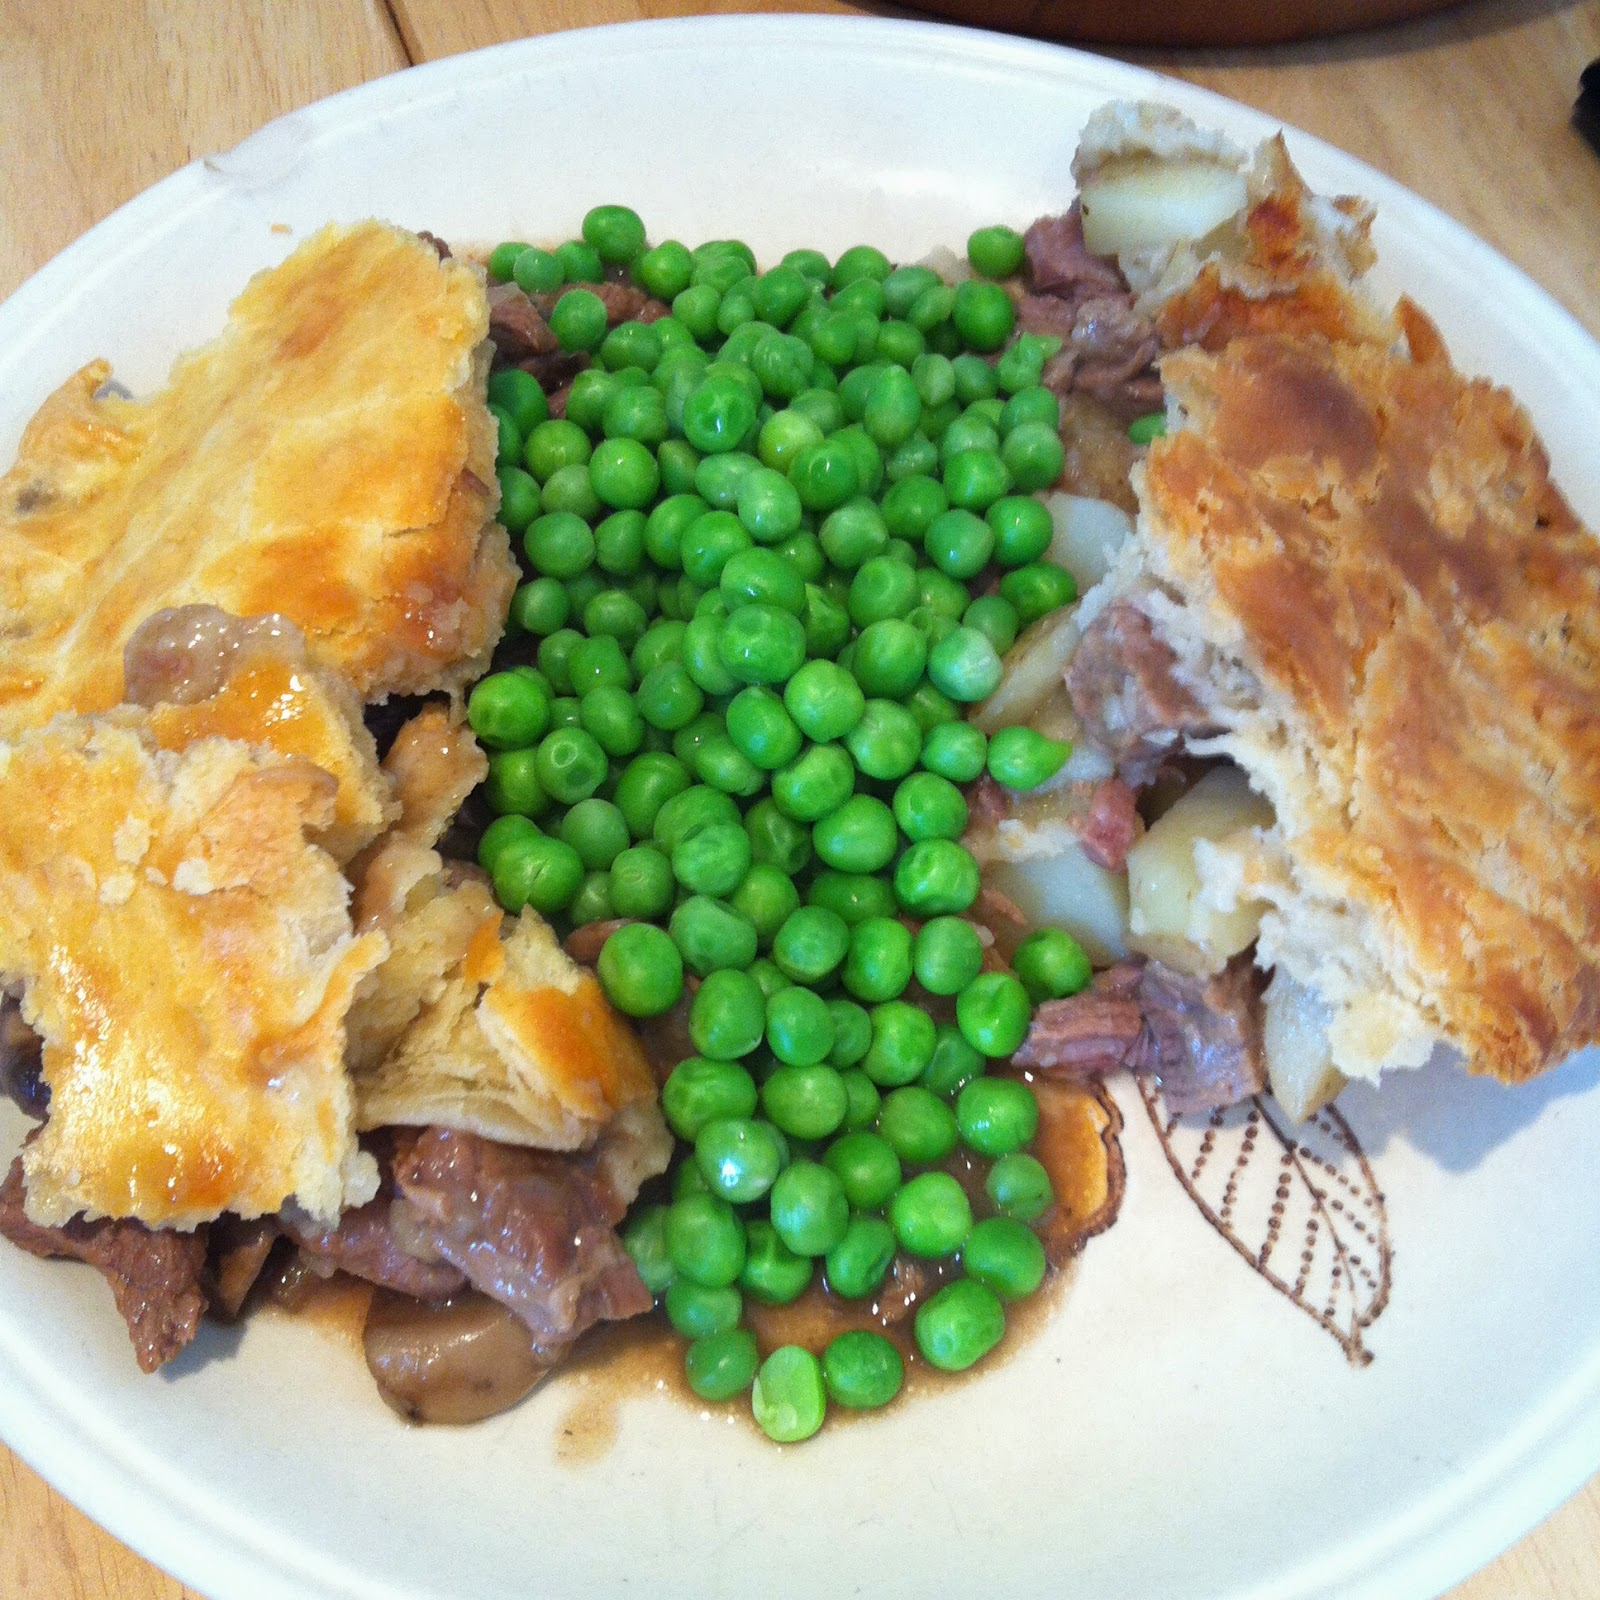 Pierate - Pie Reviews: Reci-pie Review: The Great British ...